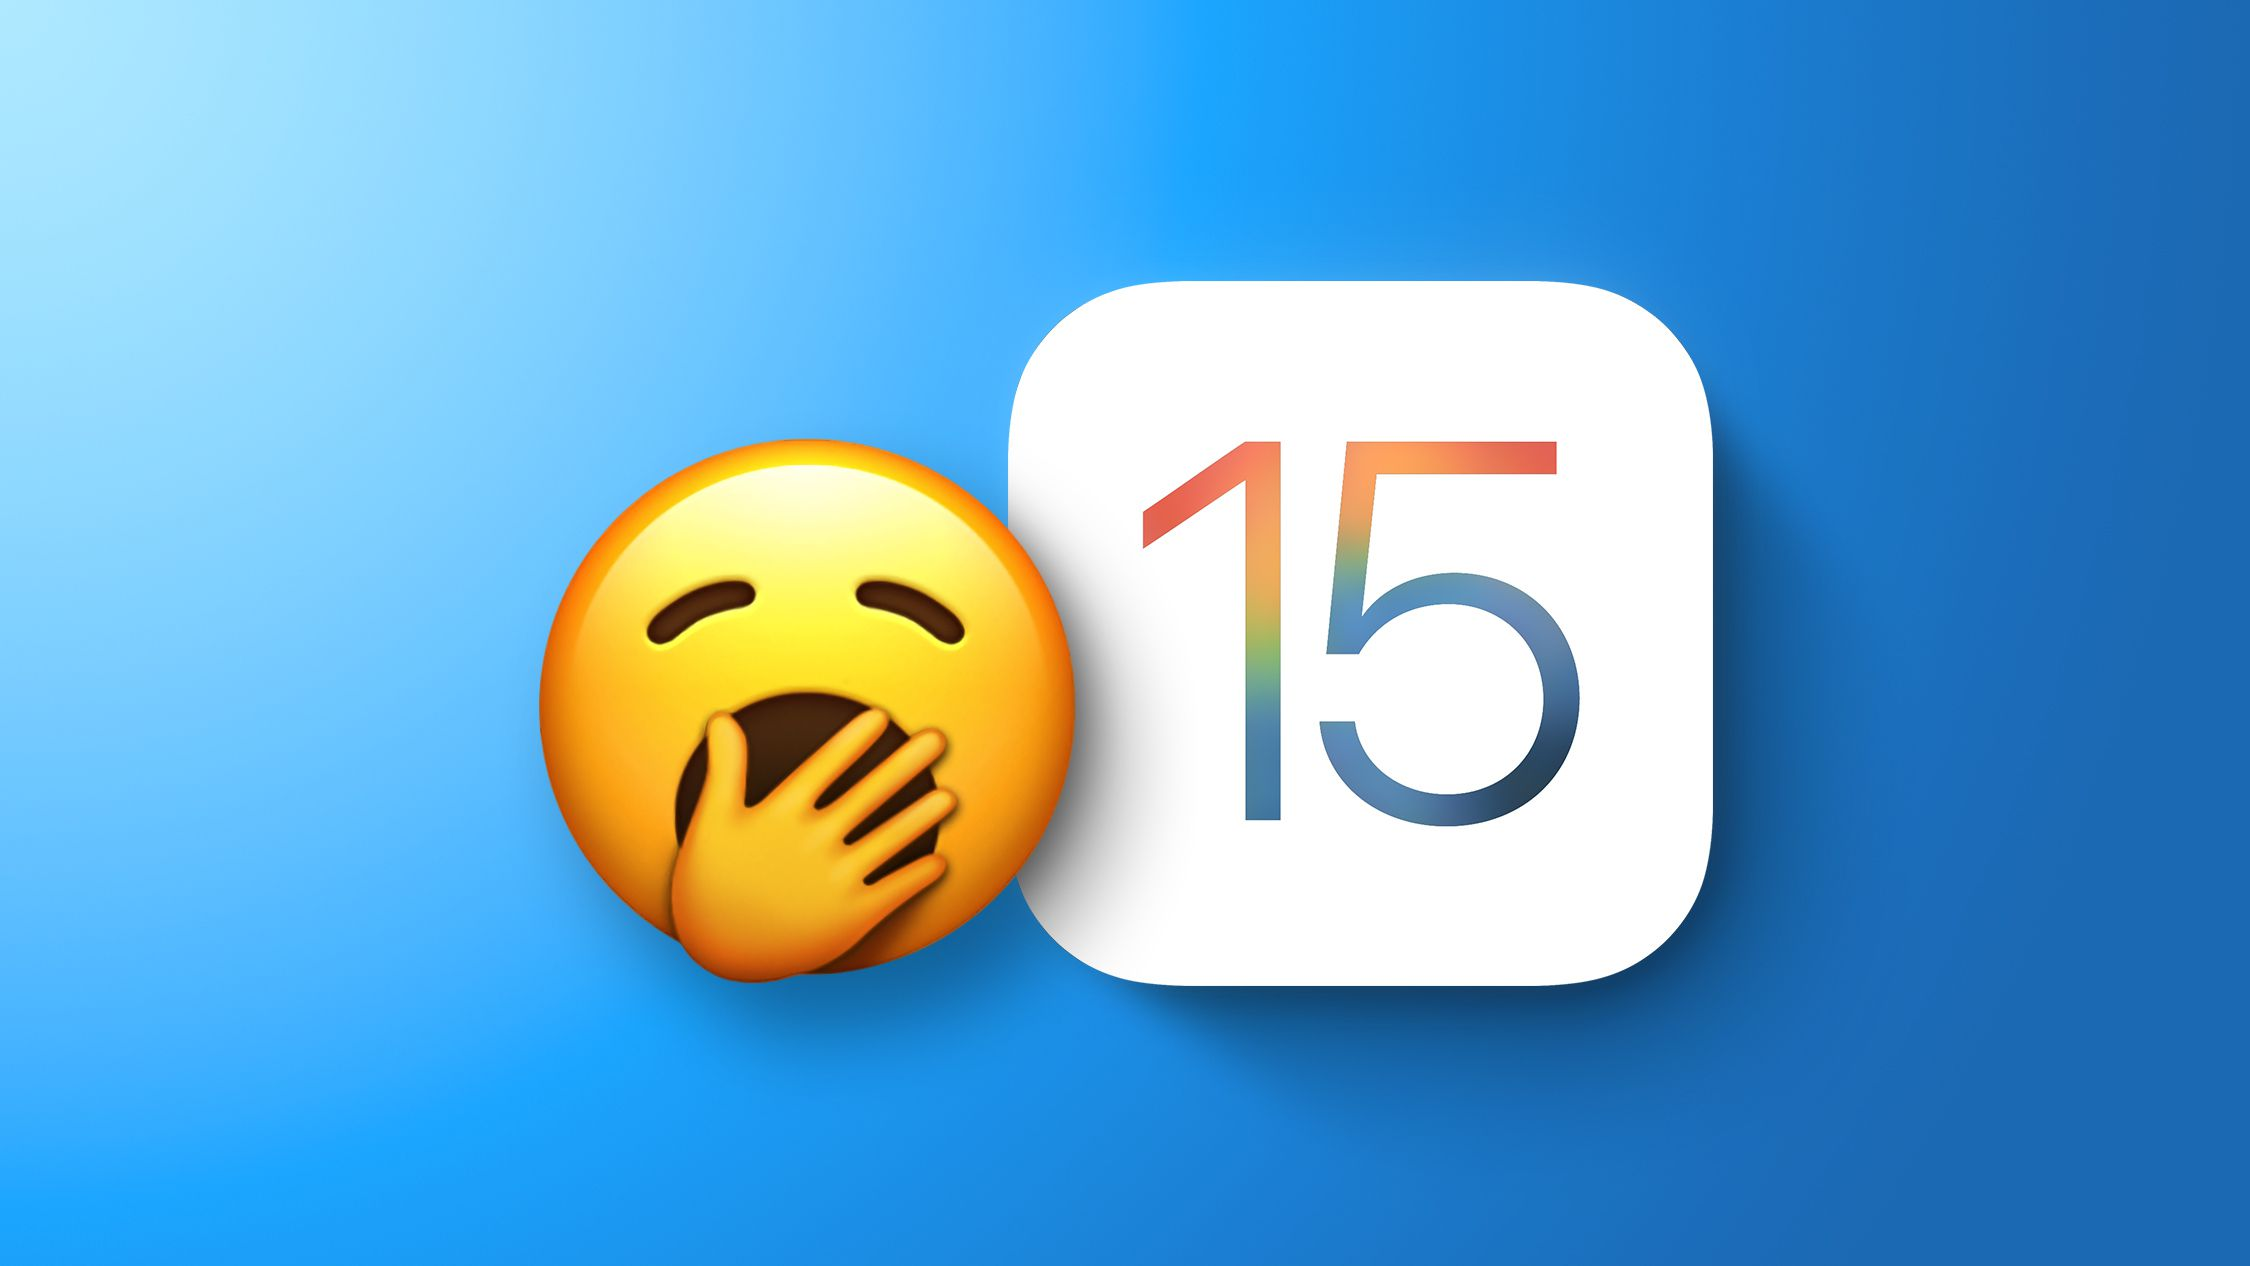 Users Underwhelmed by iOS 15 and iPadOS 15, Survey Suggests - MacRumors